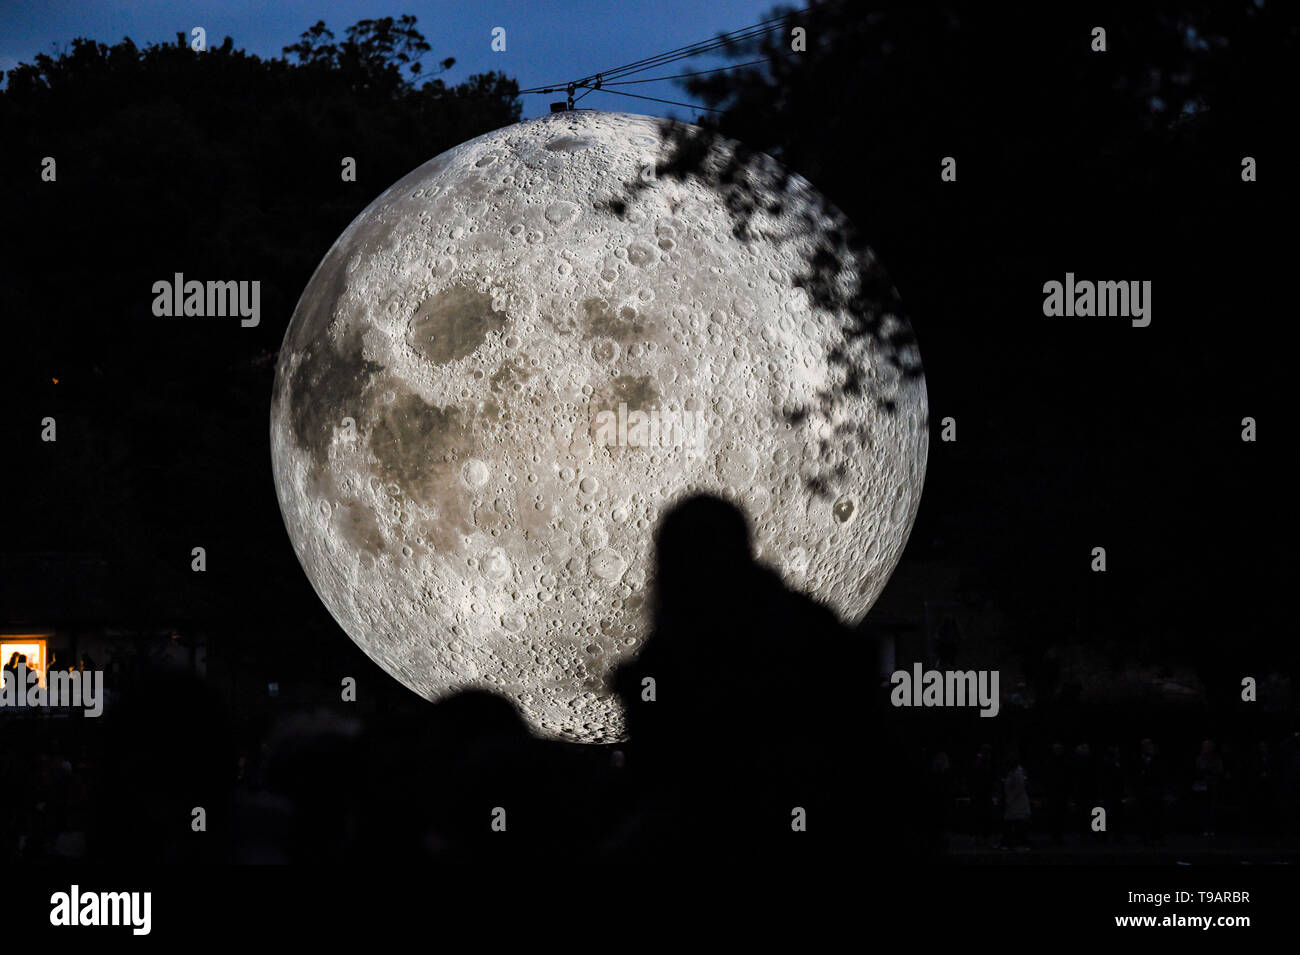 Brighton UK 17th Apr 2019 - Crowds gathered around Queens Park pond in Brighton this evening to watch the Brighton Festival event 'Museum of the Moon' by artist Luke Jerram which celebrated the 50th anniversary of the moon landing. The moon will be lit up over the weekend accompanied by music by composer Dan Jones . Credit: Simon Dack / Alamy Live News - Stock Image